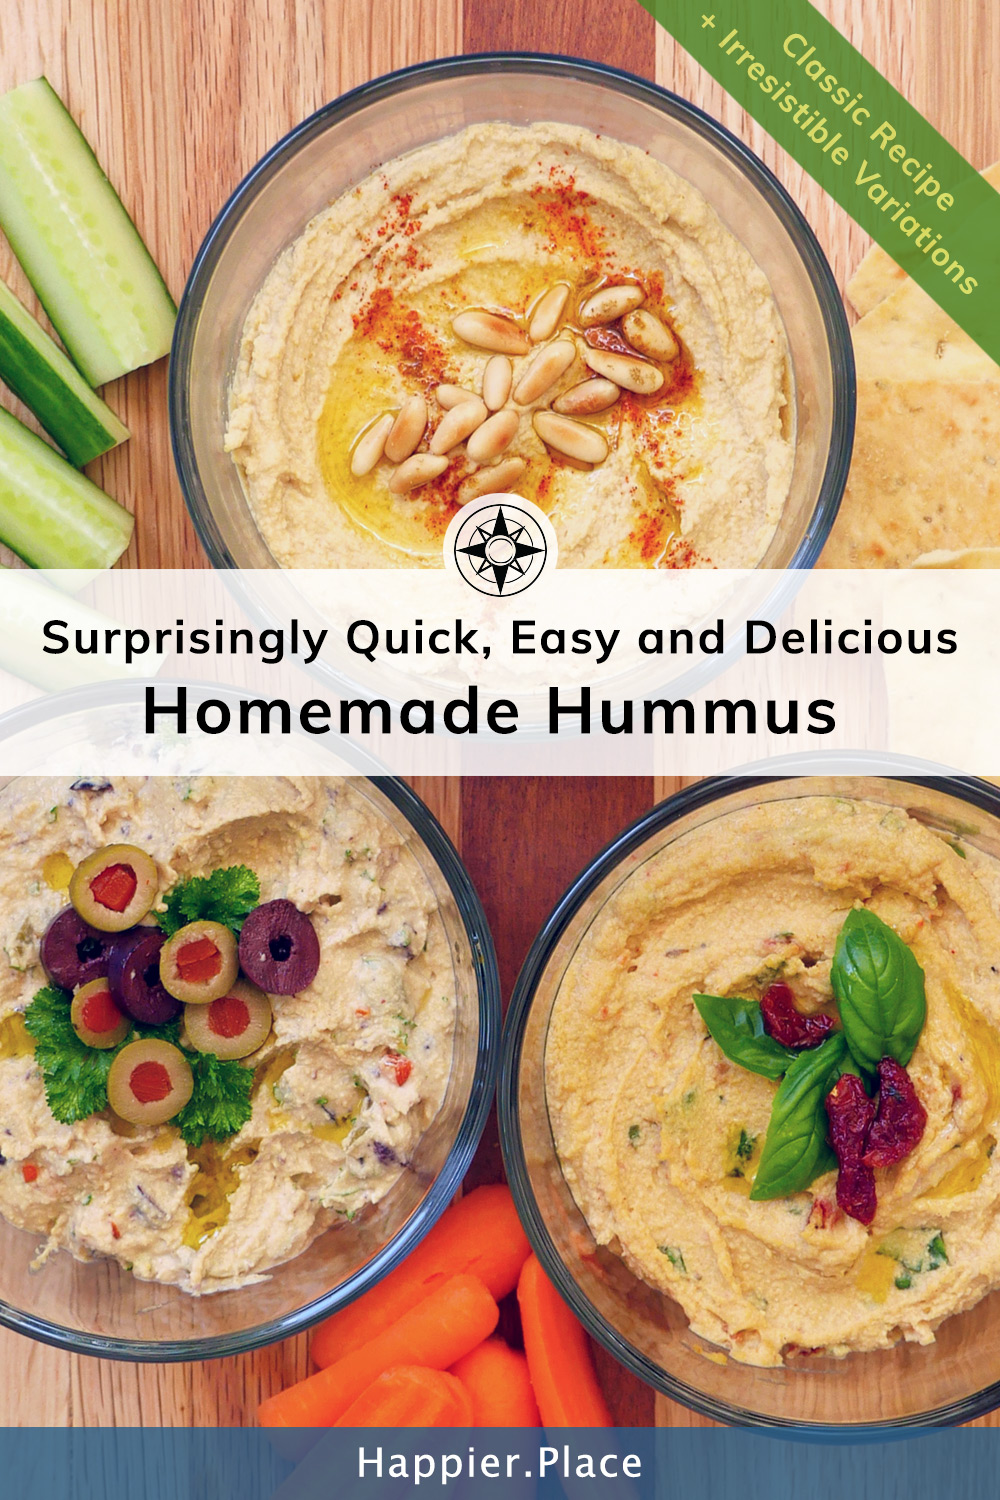 Quick easy and delicious homemade hummus recipe for classic hummus and variations. #recipes #recipeseasy #picnic #HappierPlace